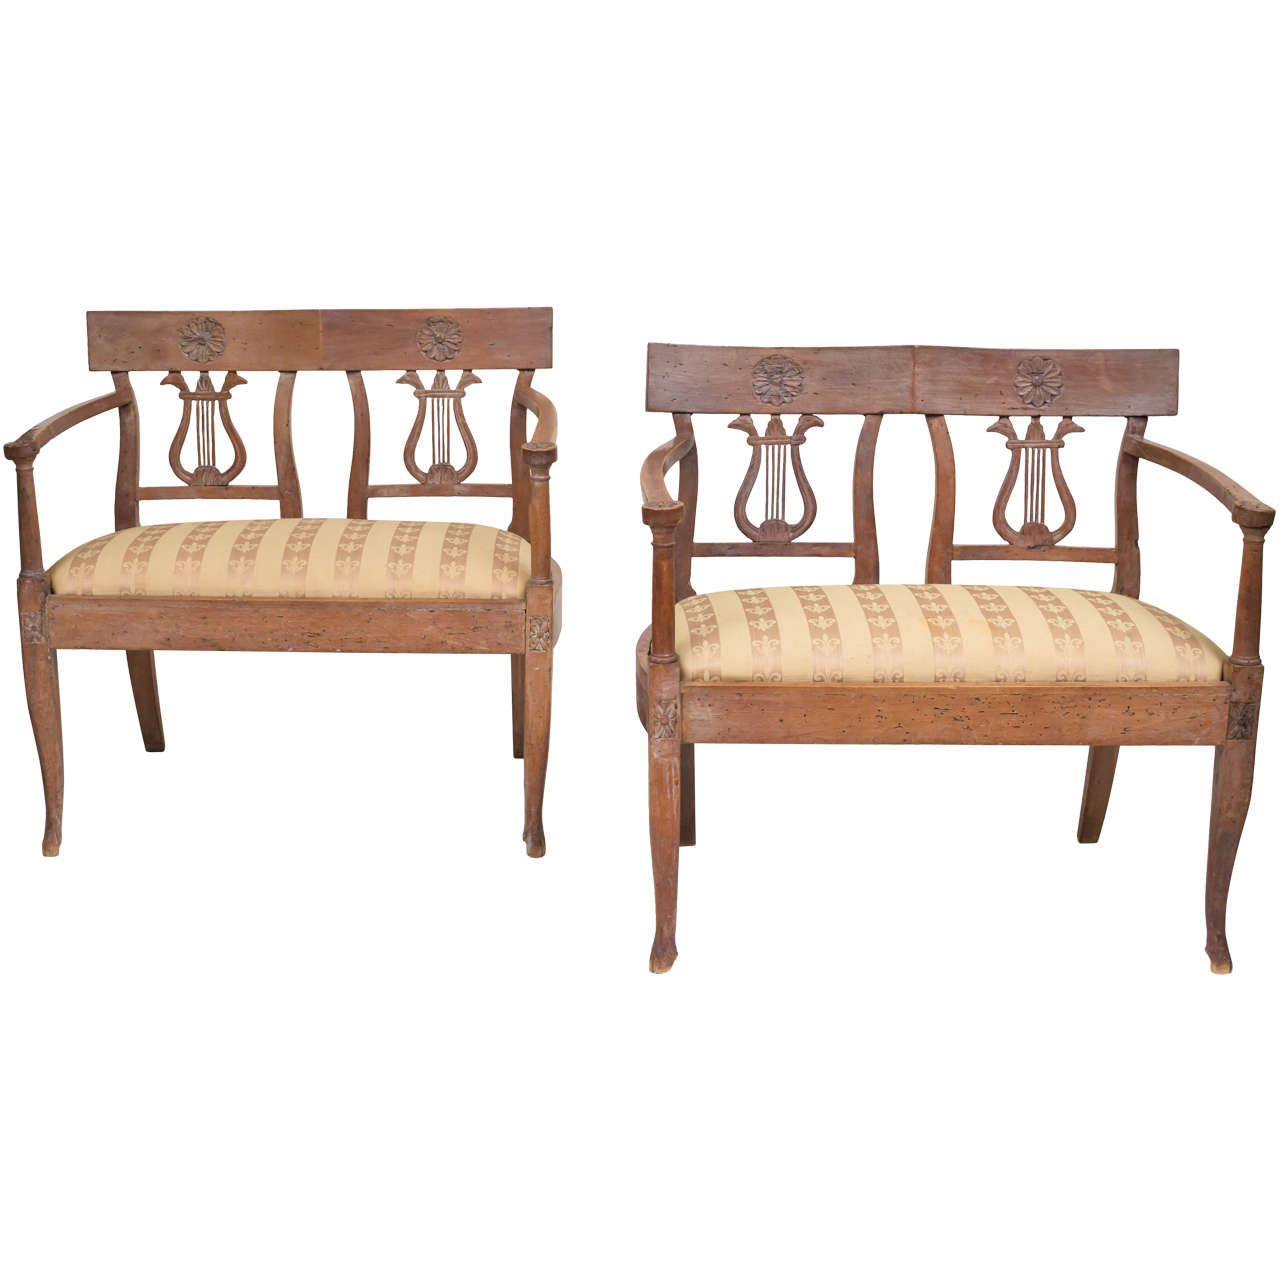 Late 18th Century Italian Neoclassic Walnut Benches, Pair 1